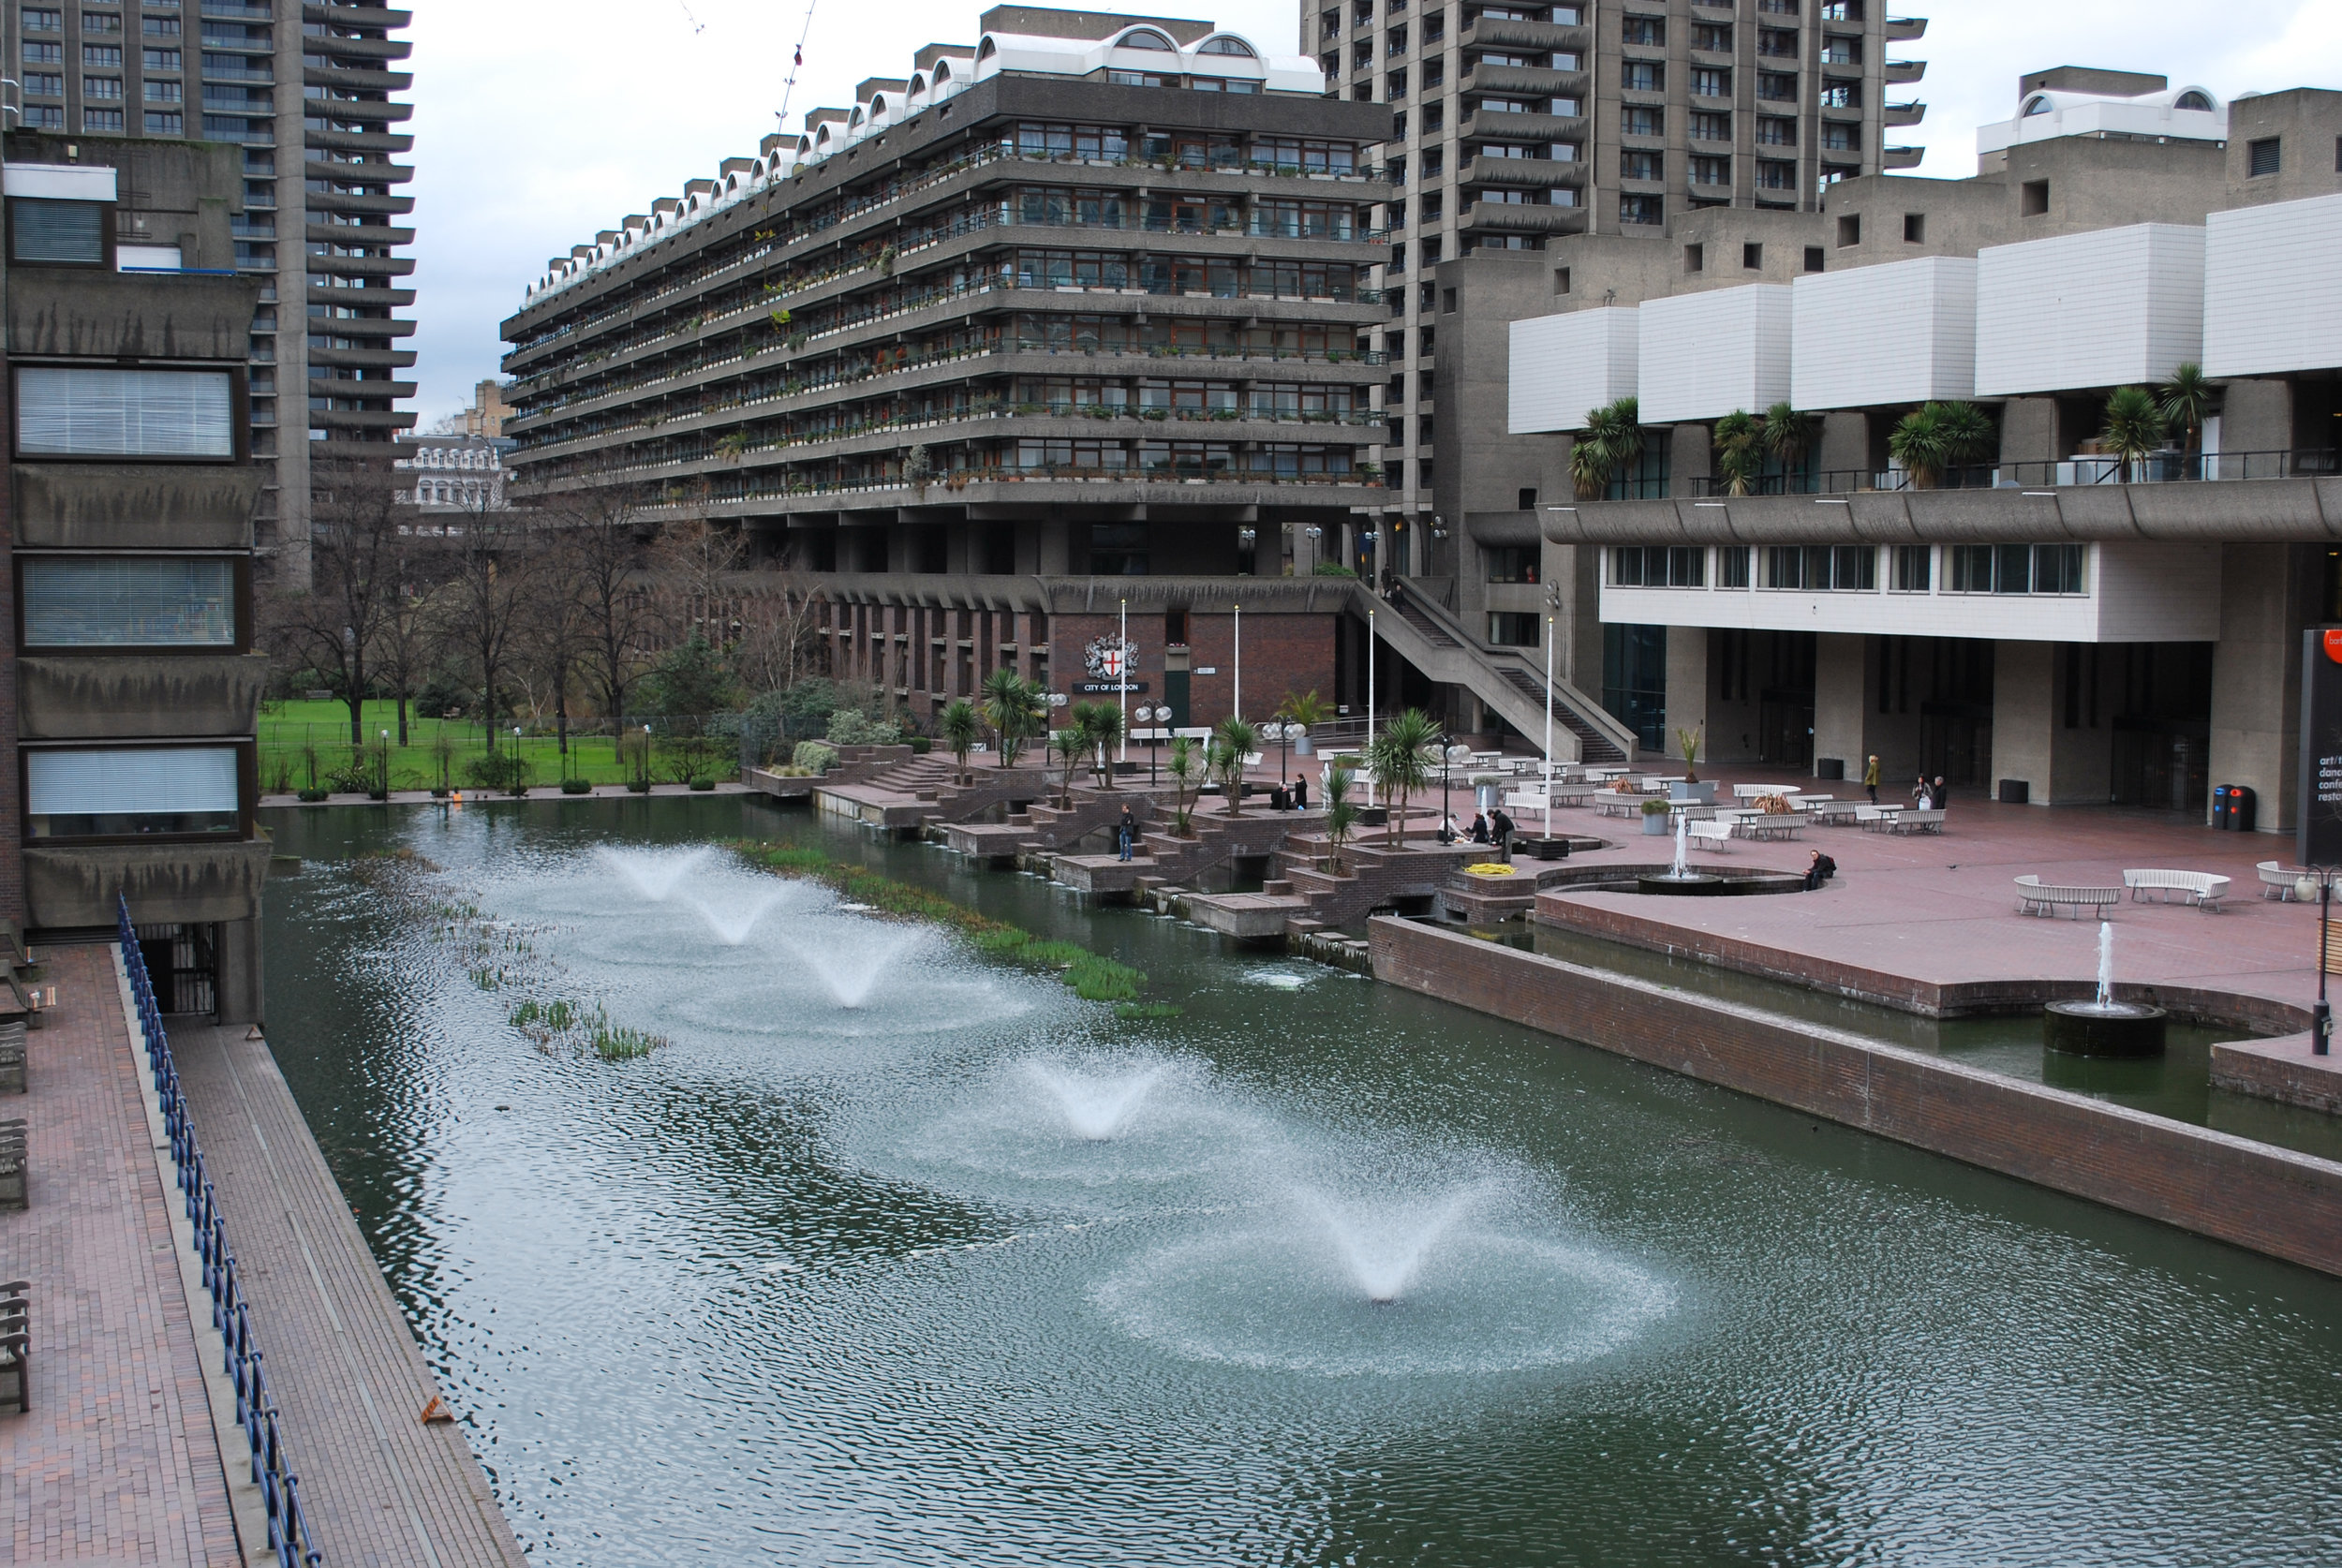 The Barbican complex - One of Pete's favourite bits of London